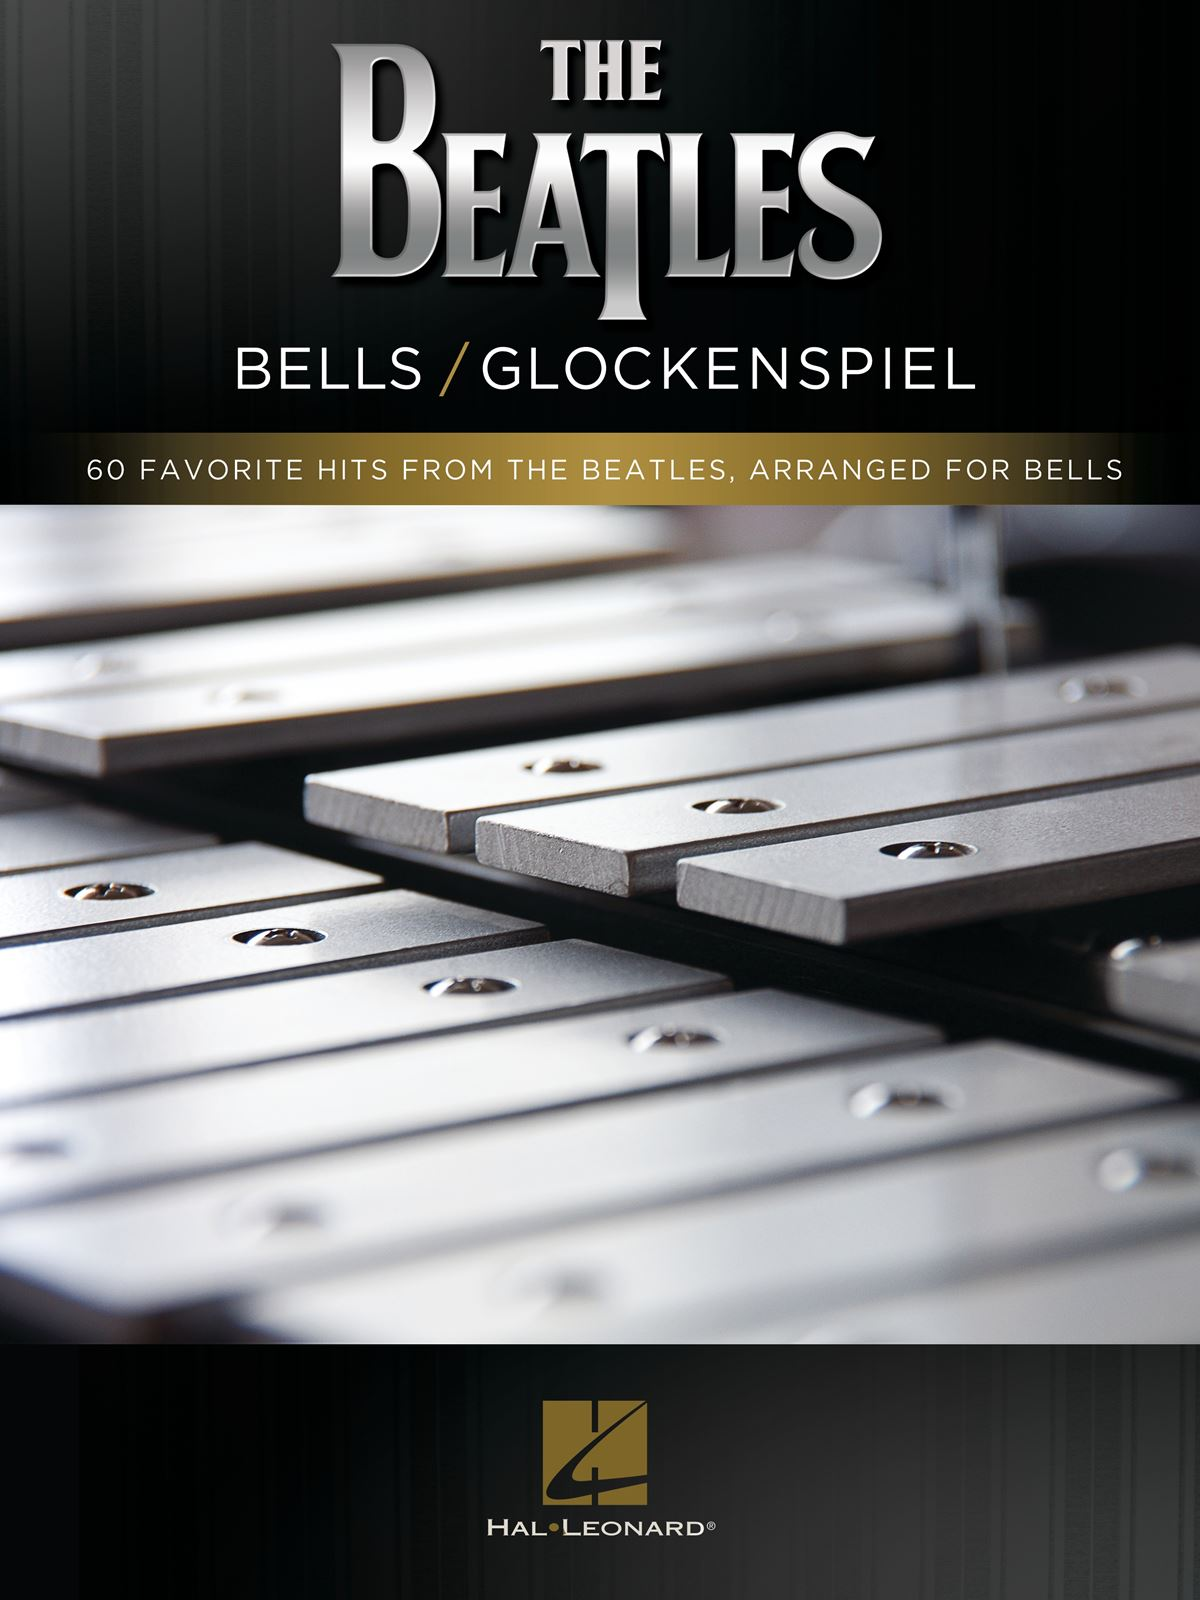 The Beatles: The Beatles - Bells/Glockenspiel: Percussion: Instrumental Album